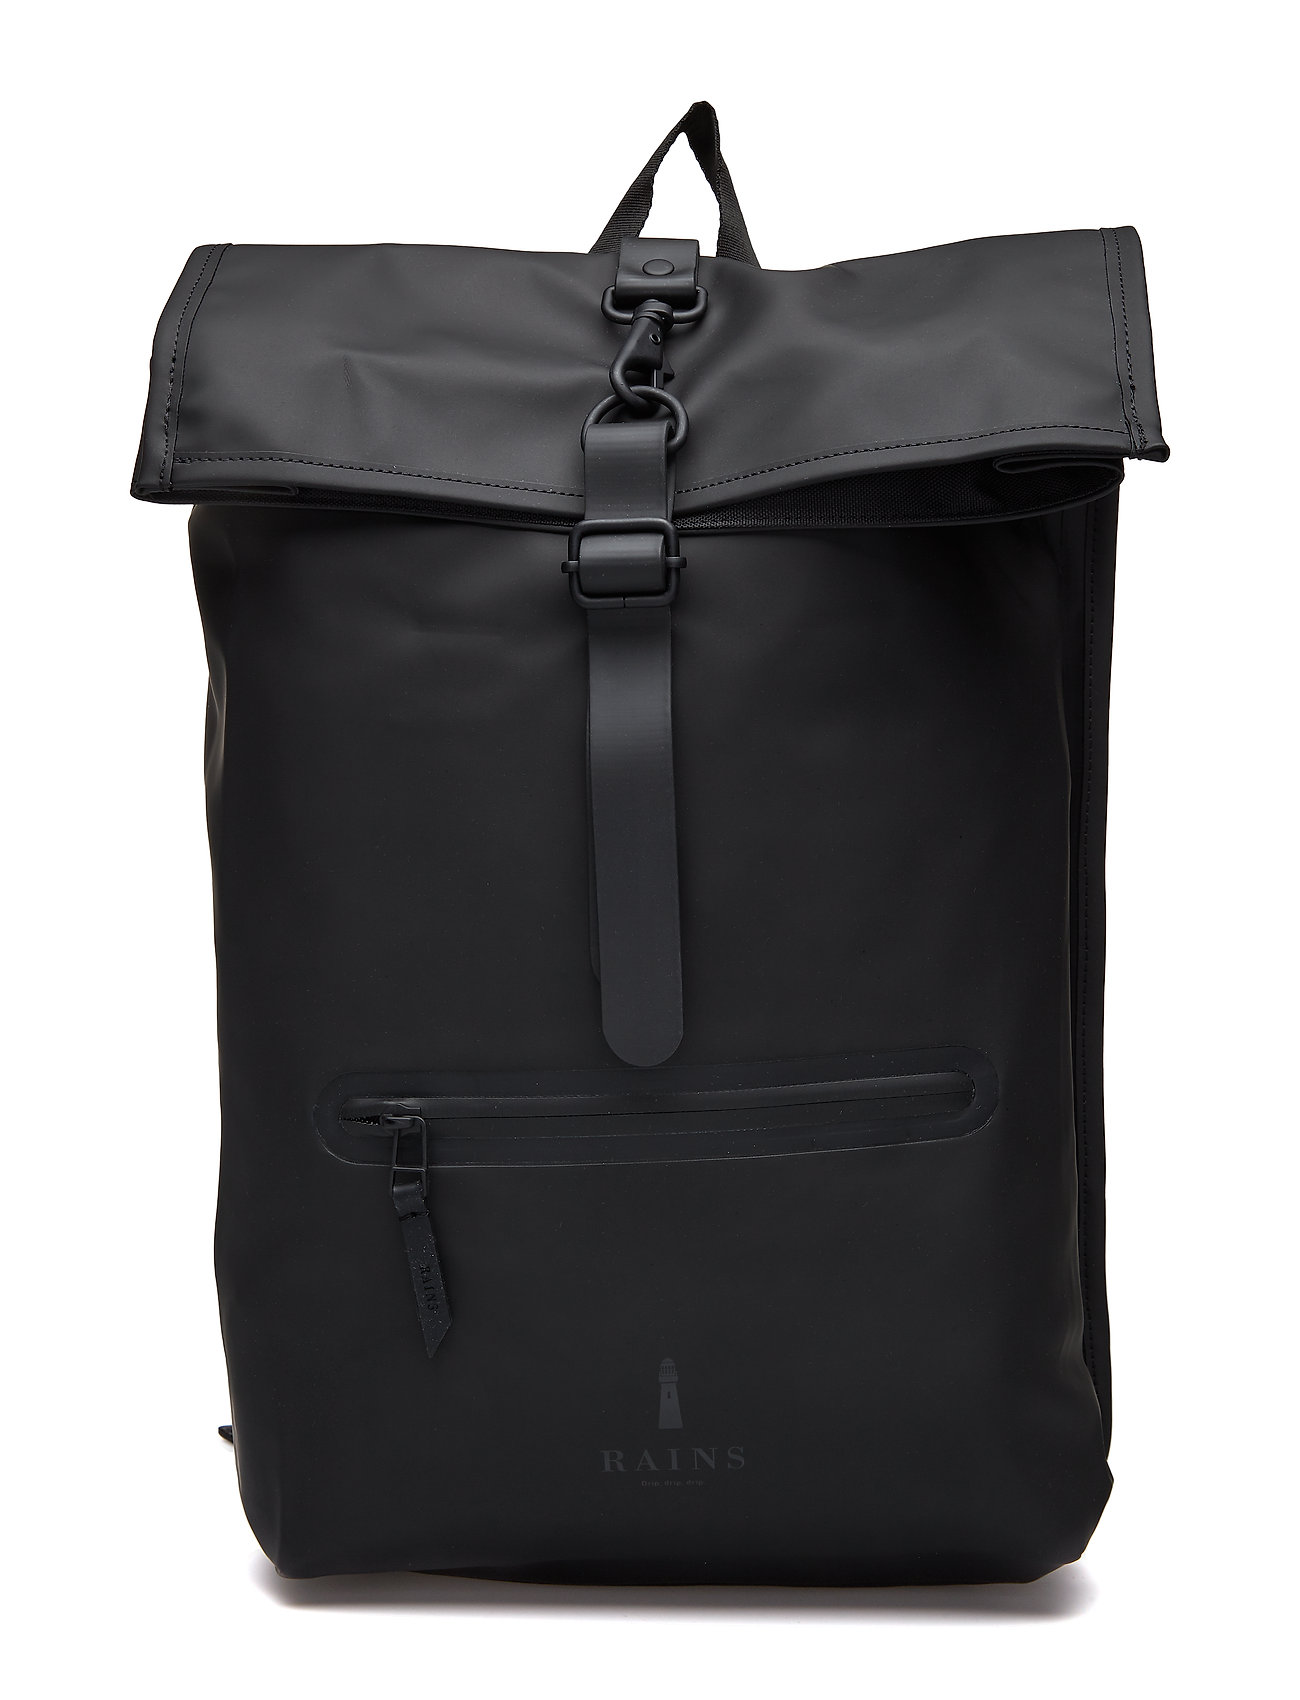 Rains Roll Top Rucksack - 01 BLACK